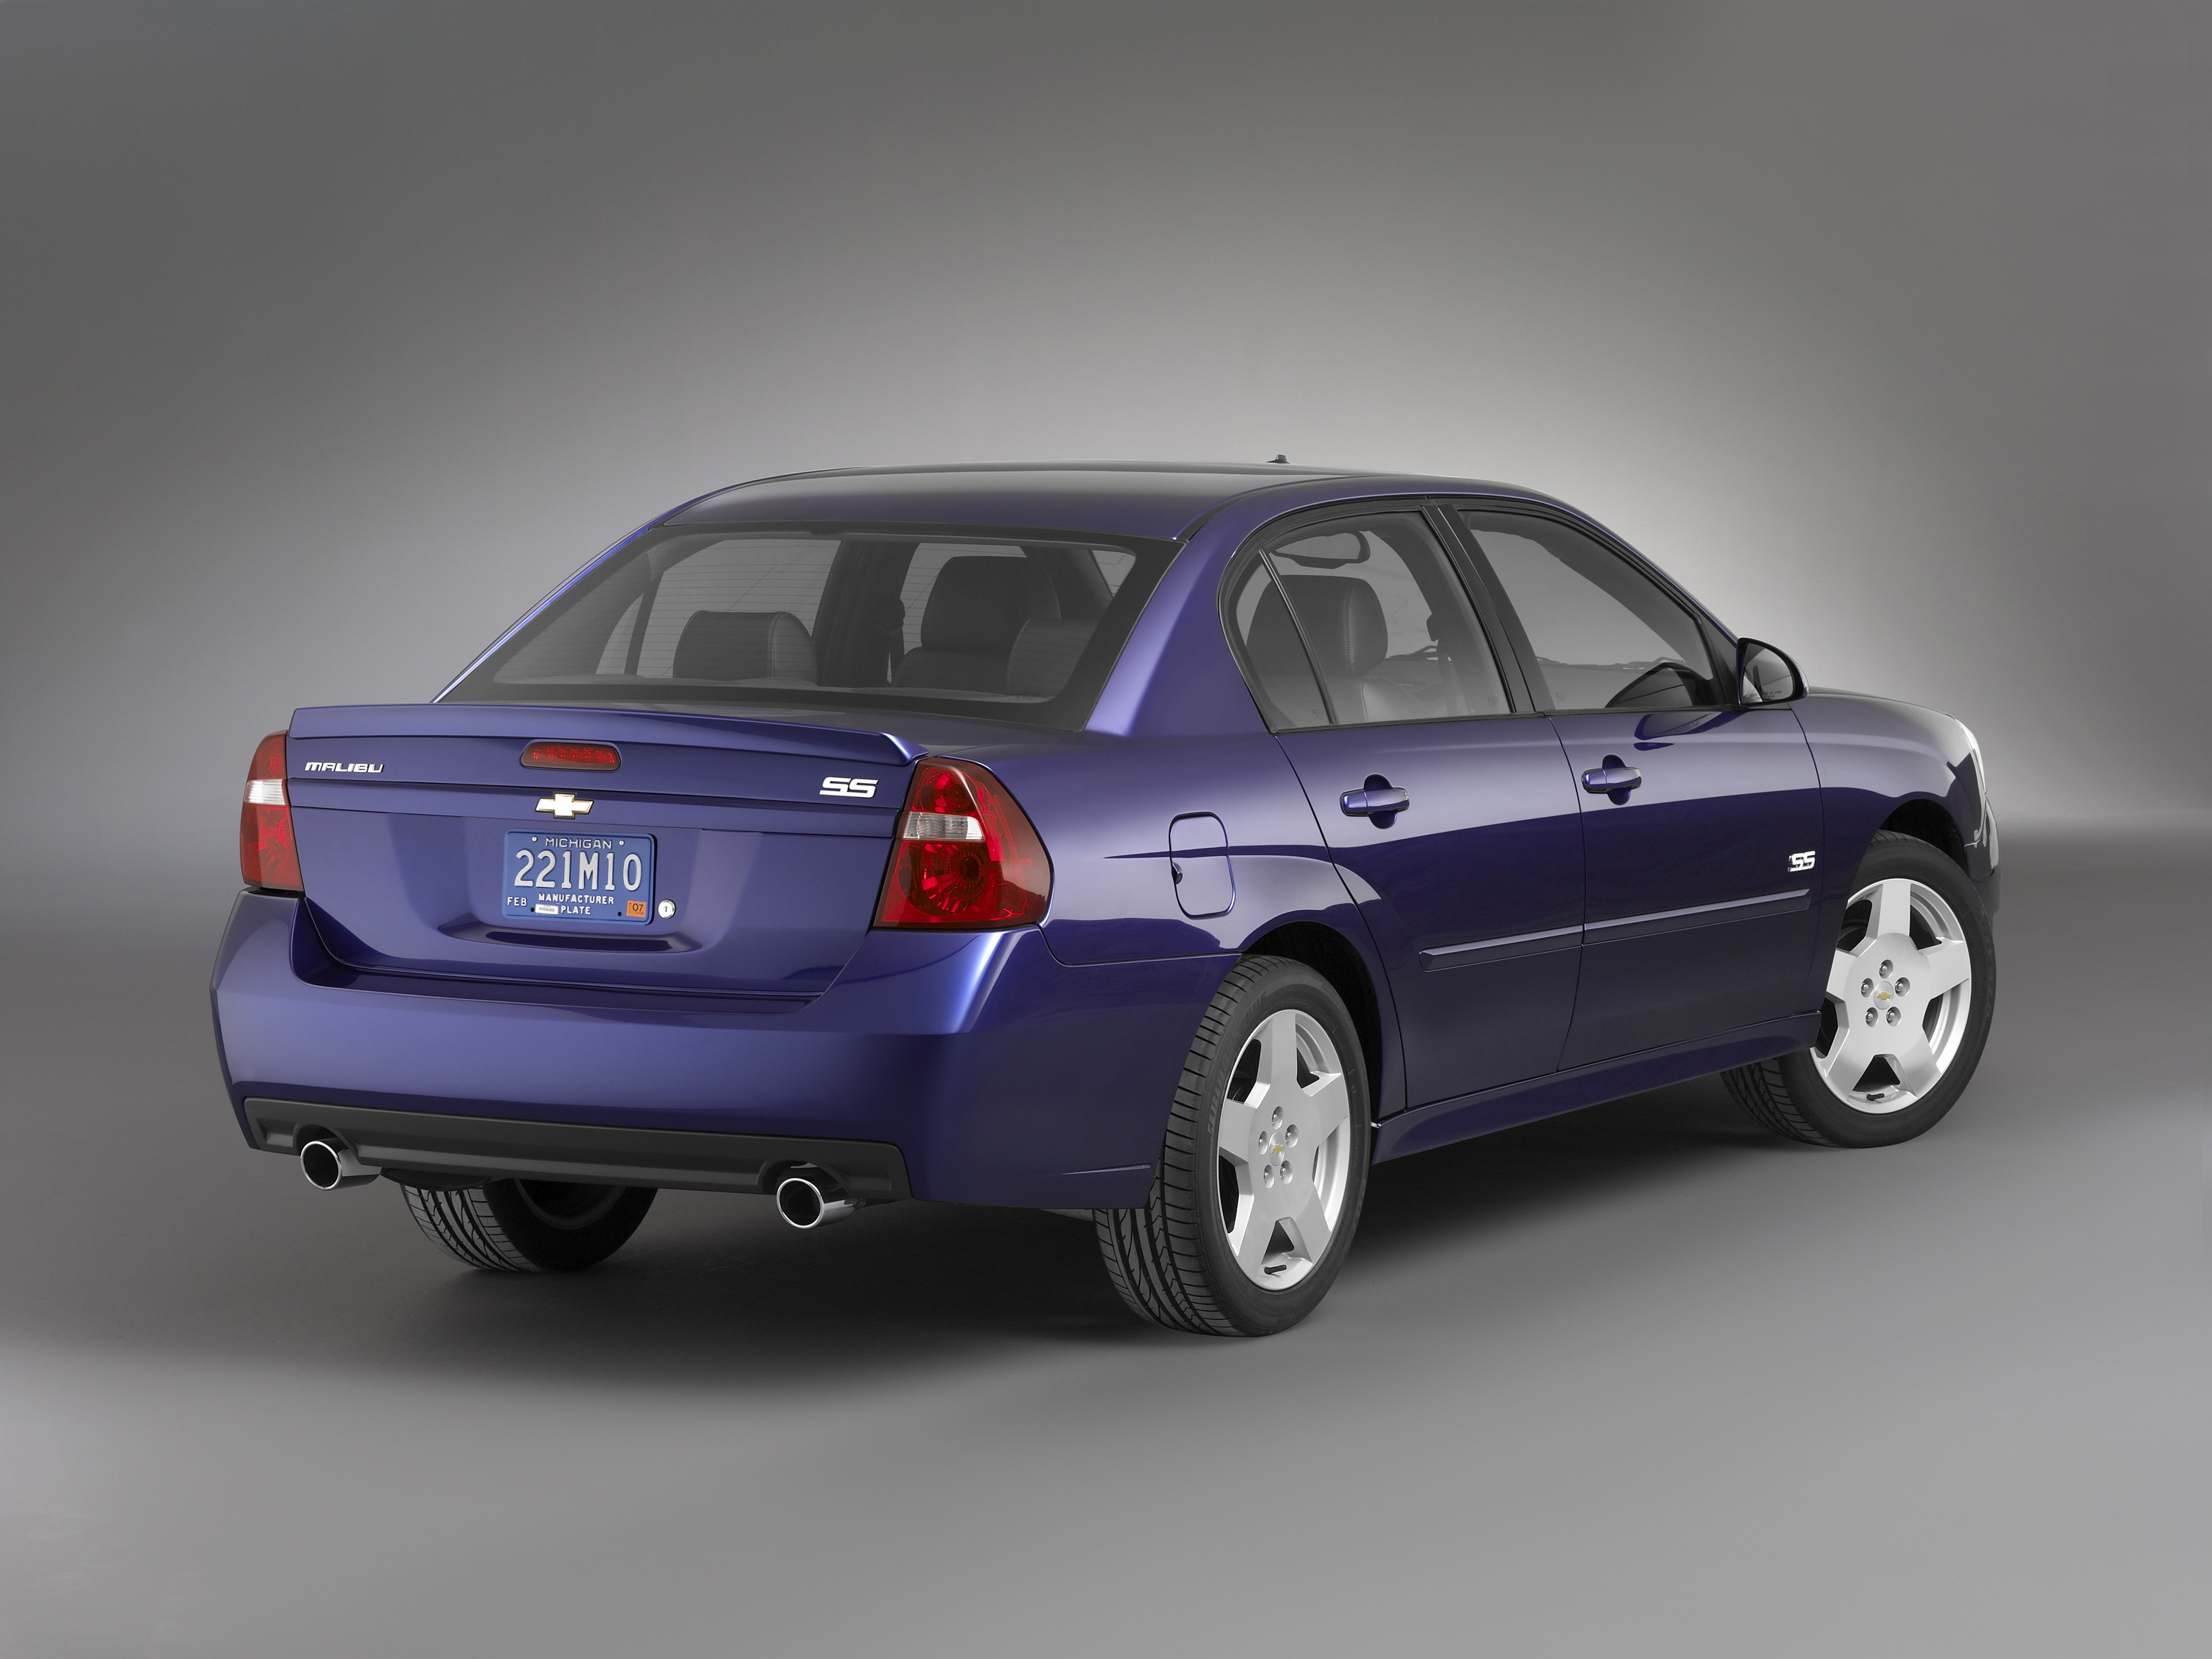 2007 Chevrolet Malibu SS | Top Speed. »